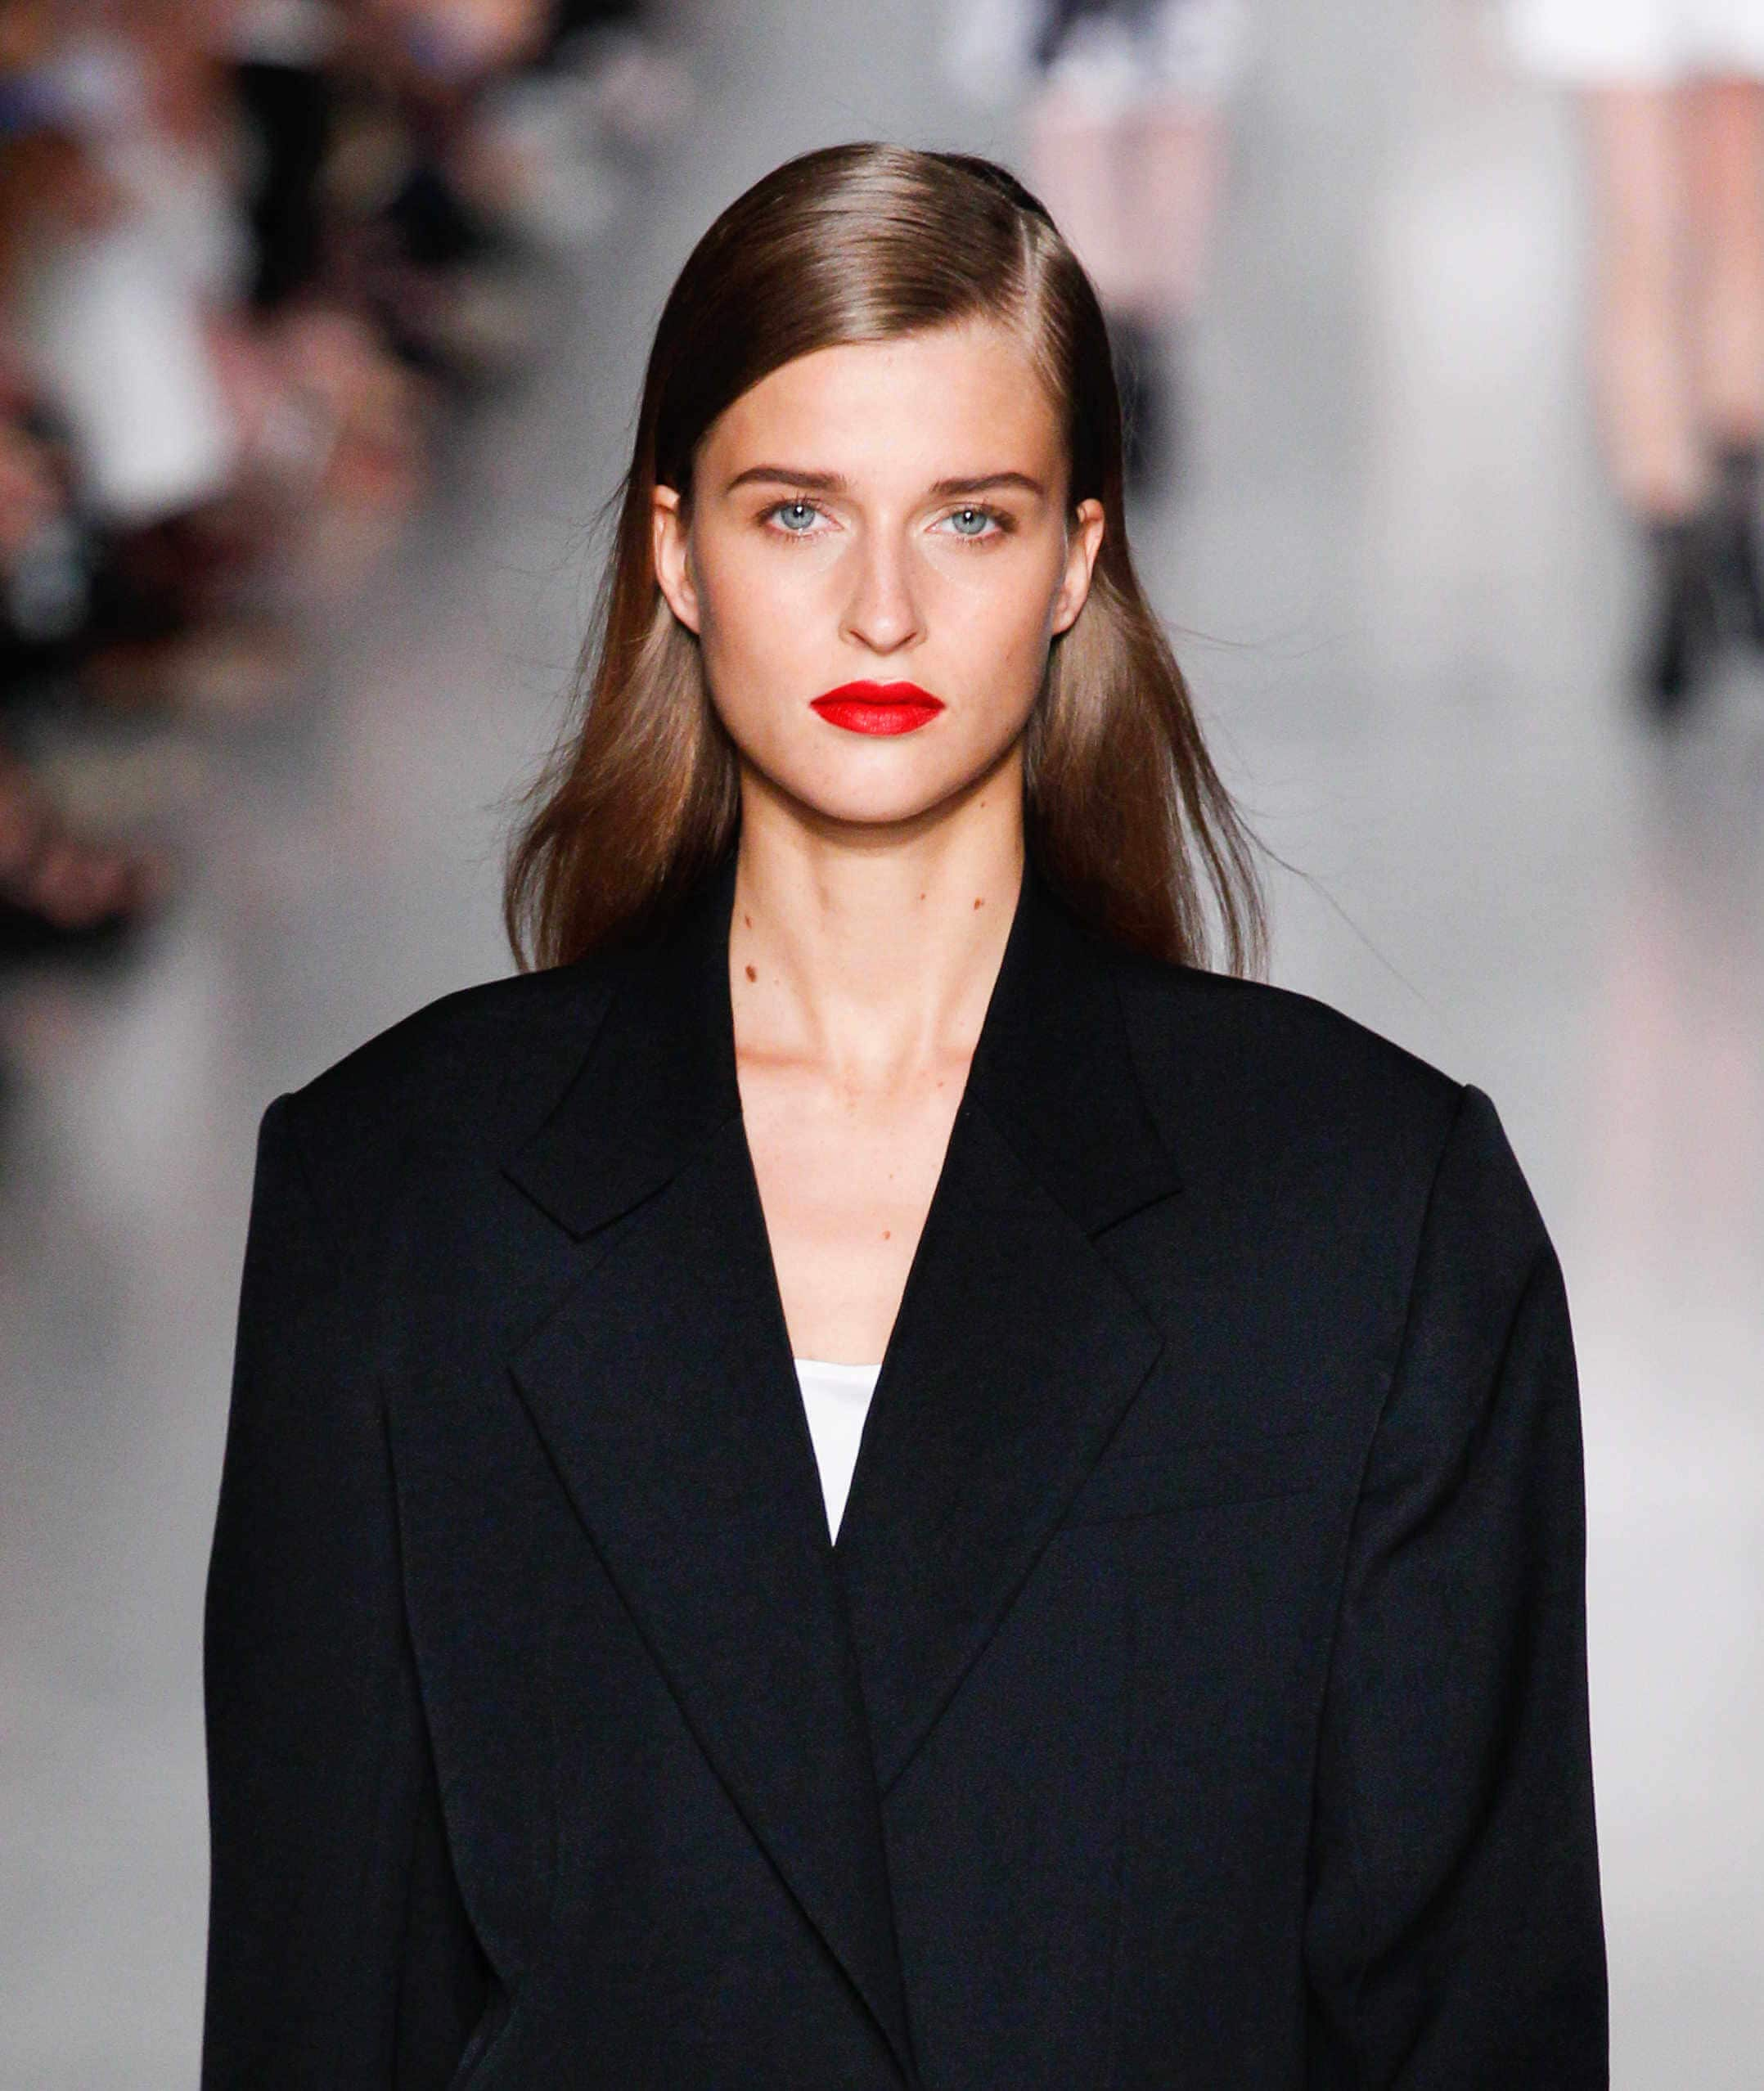 Hairstyles for round faces: Brunette woman with a side parting wearing red lipstick